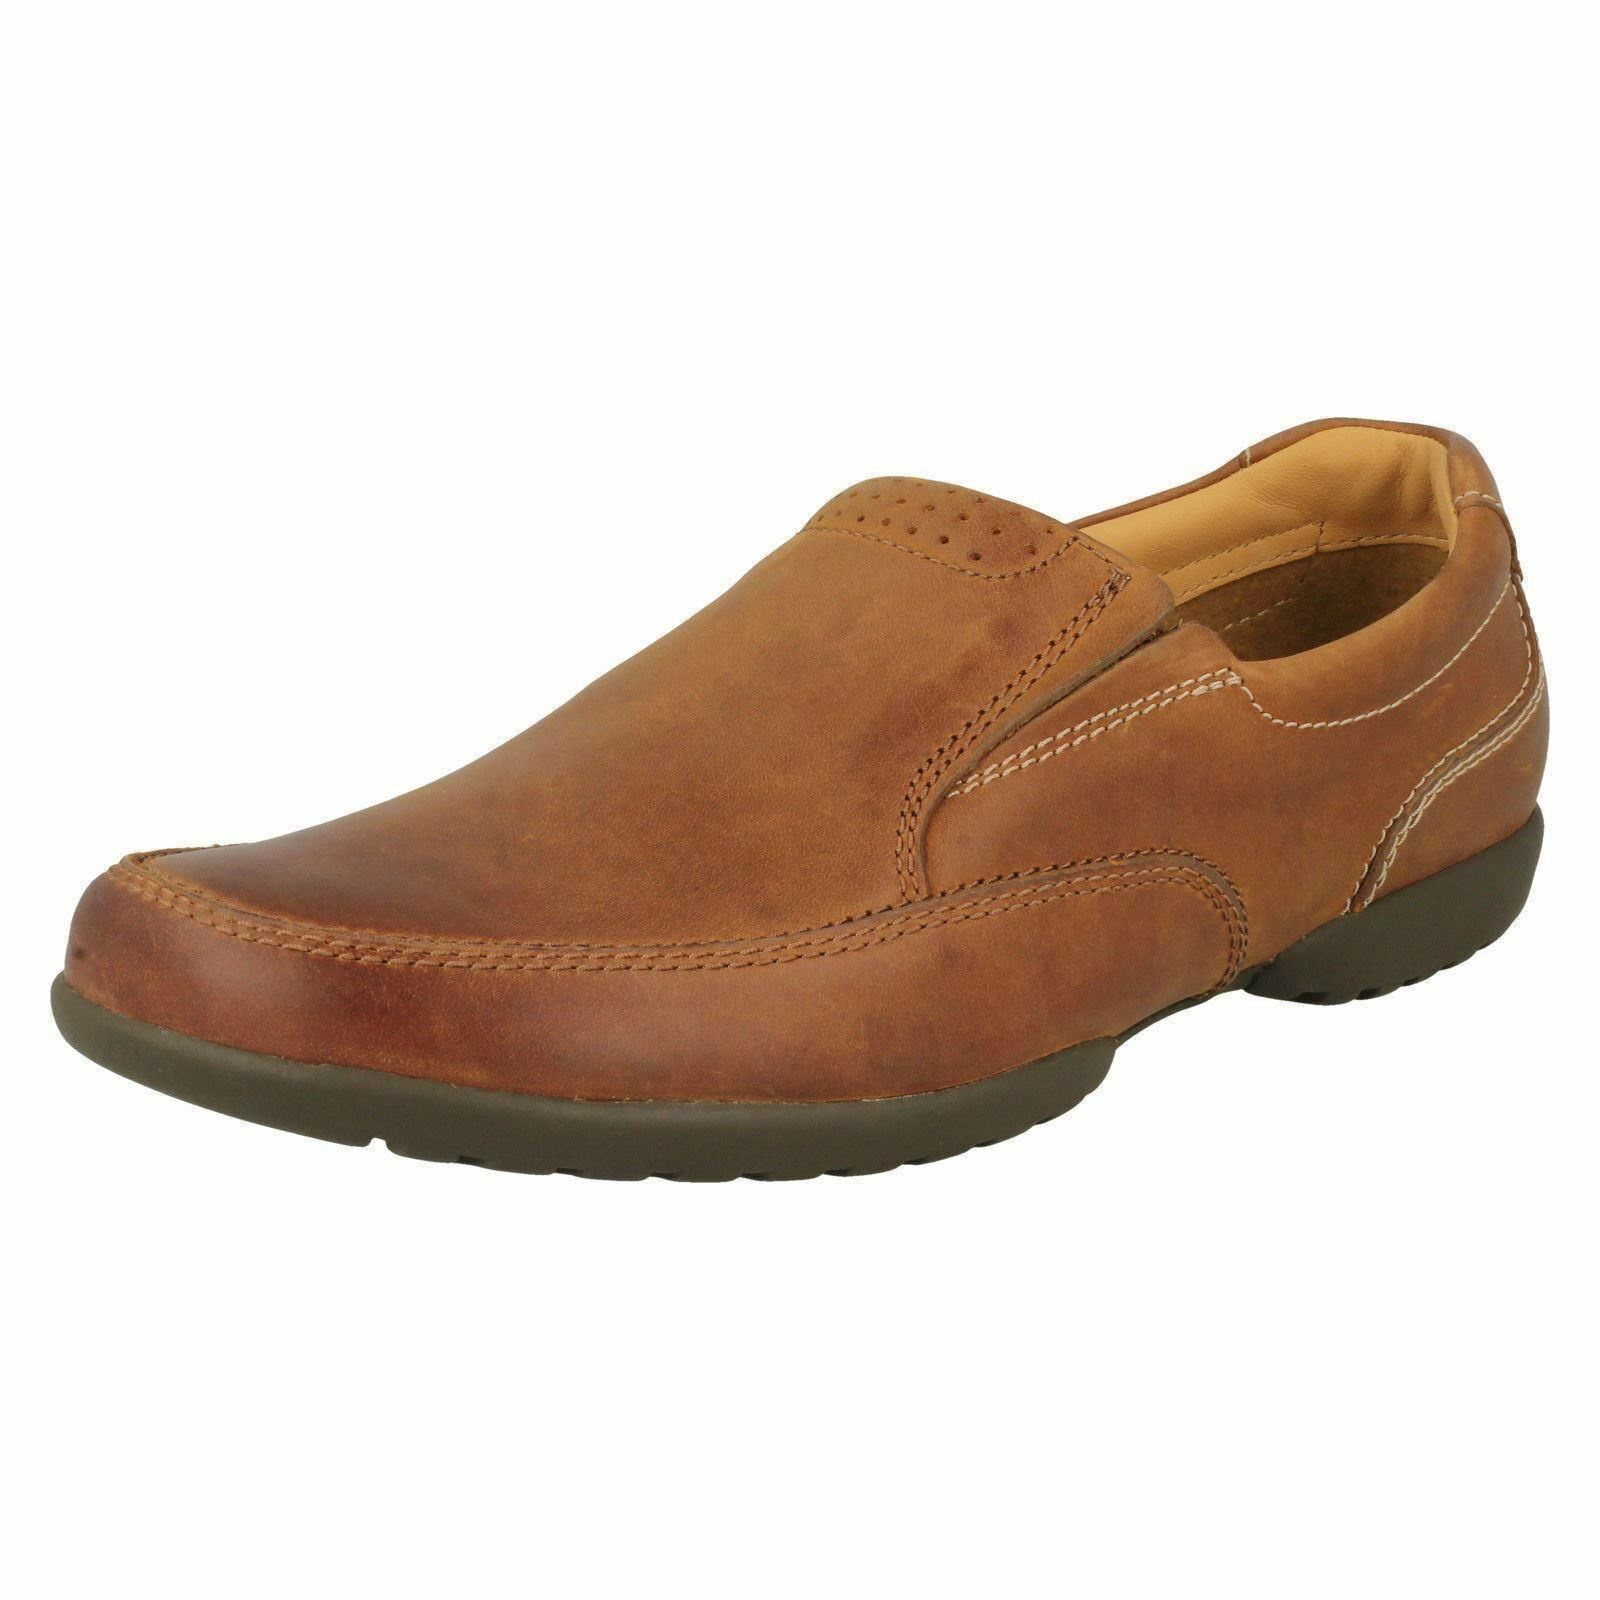 Mens Clarks Recline Free Tan Leather Casual Slip On Shoes H Fitting